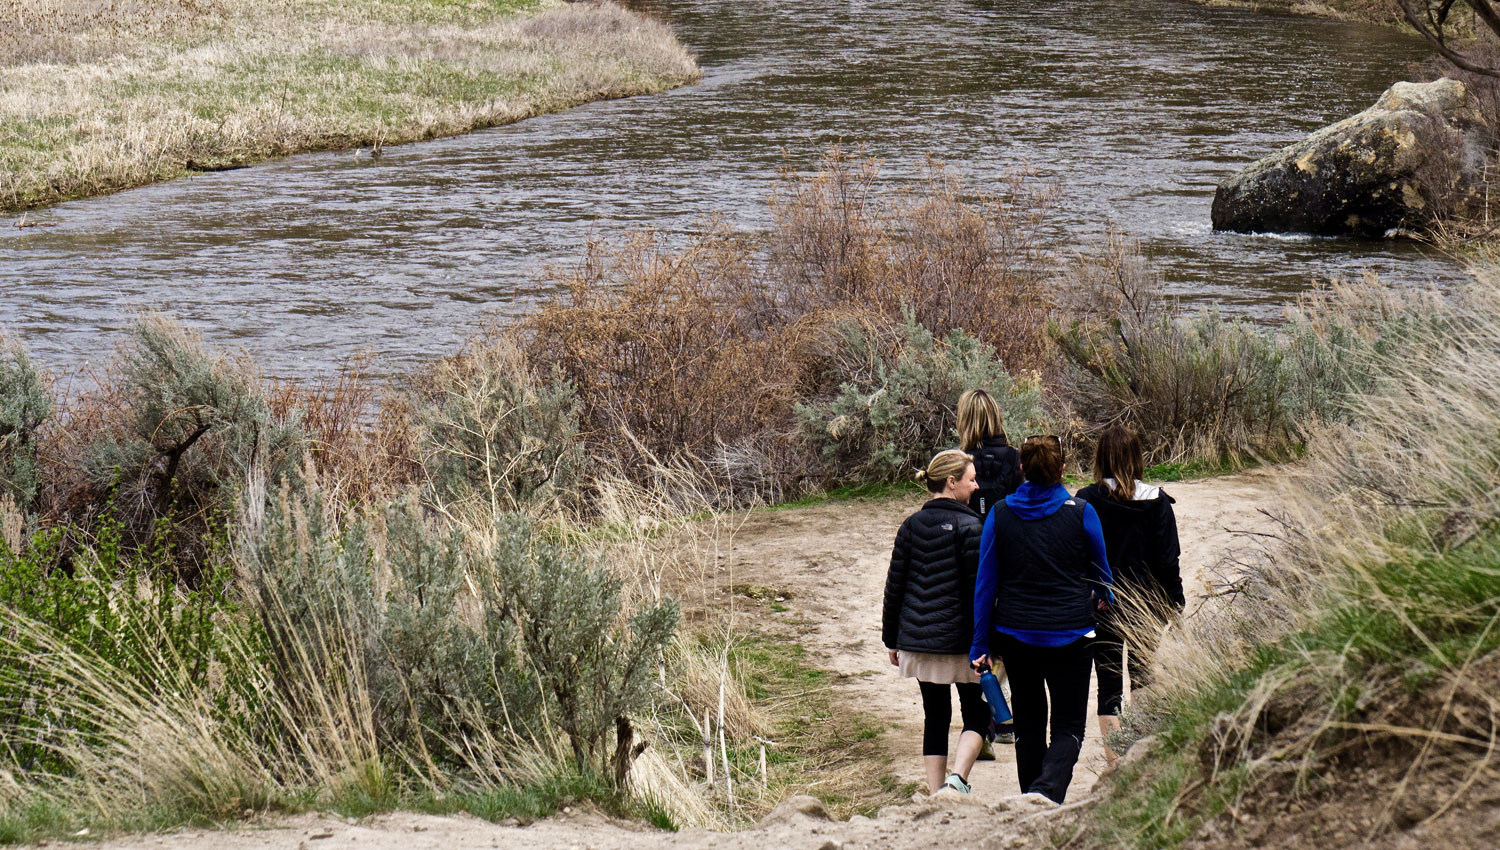 hiking along the River Trail at Smith Rock State Park